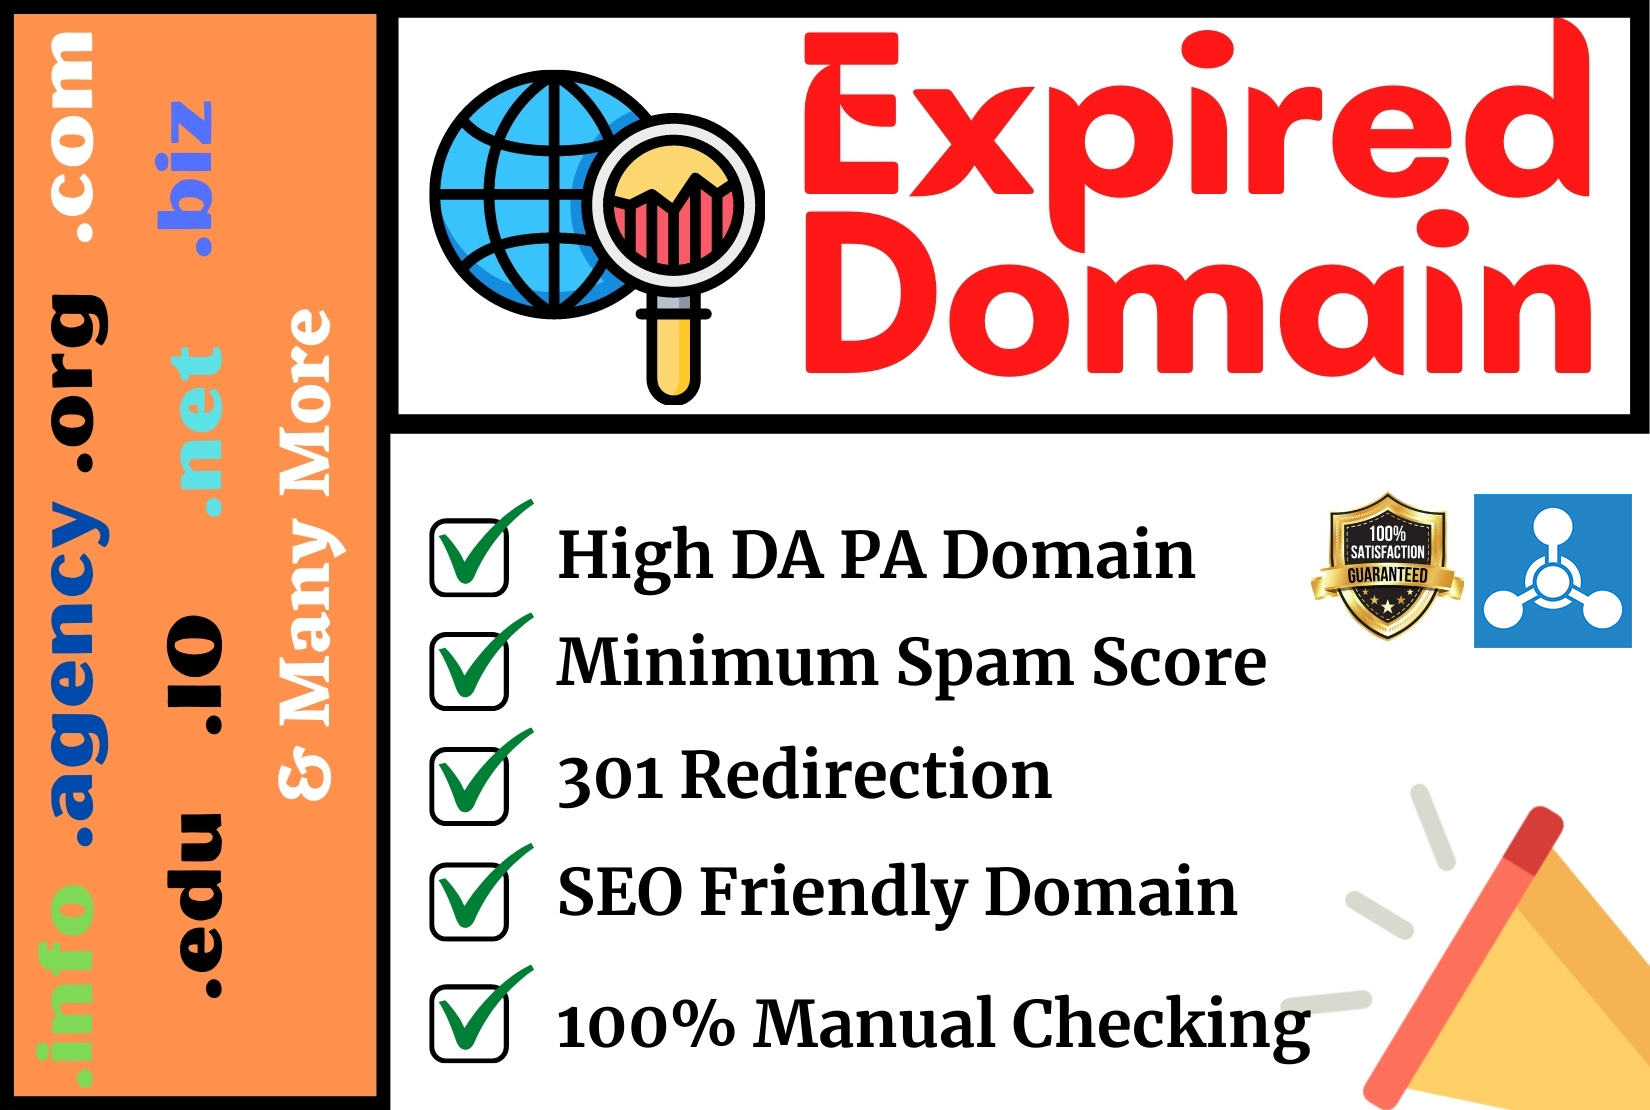 I will find high authority expired domain with 301 redirection